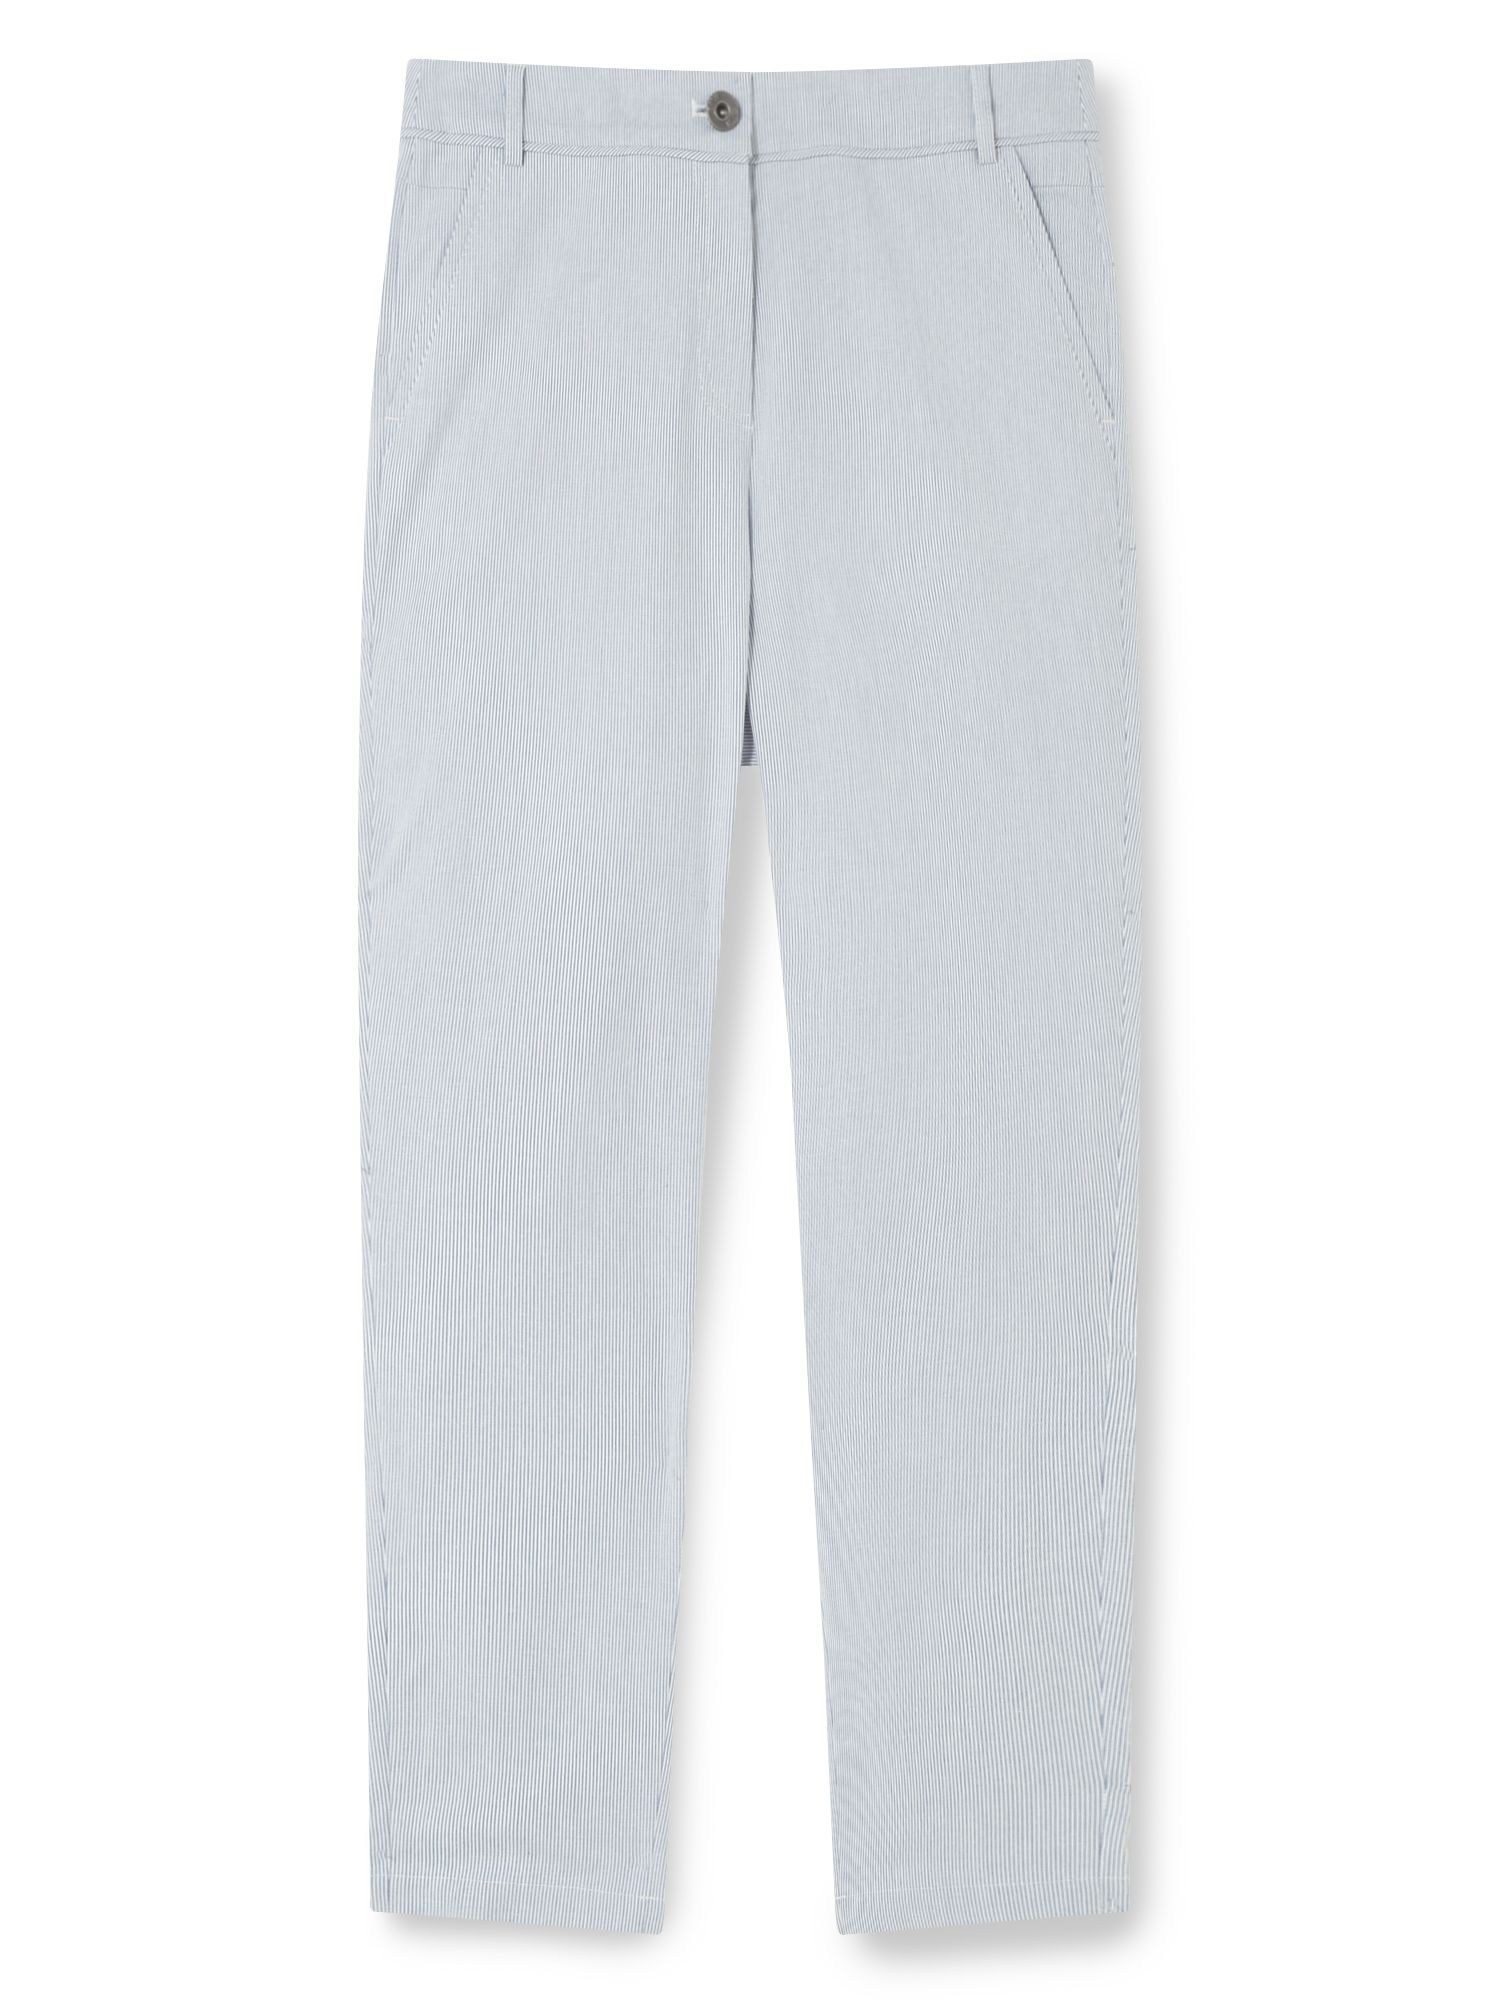 Dash Blue Ticking Stripe Trouser, Blue